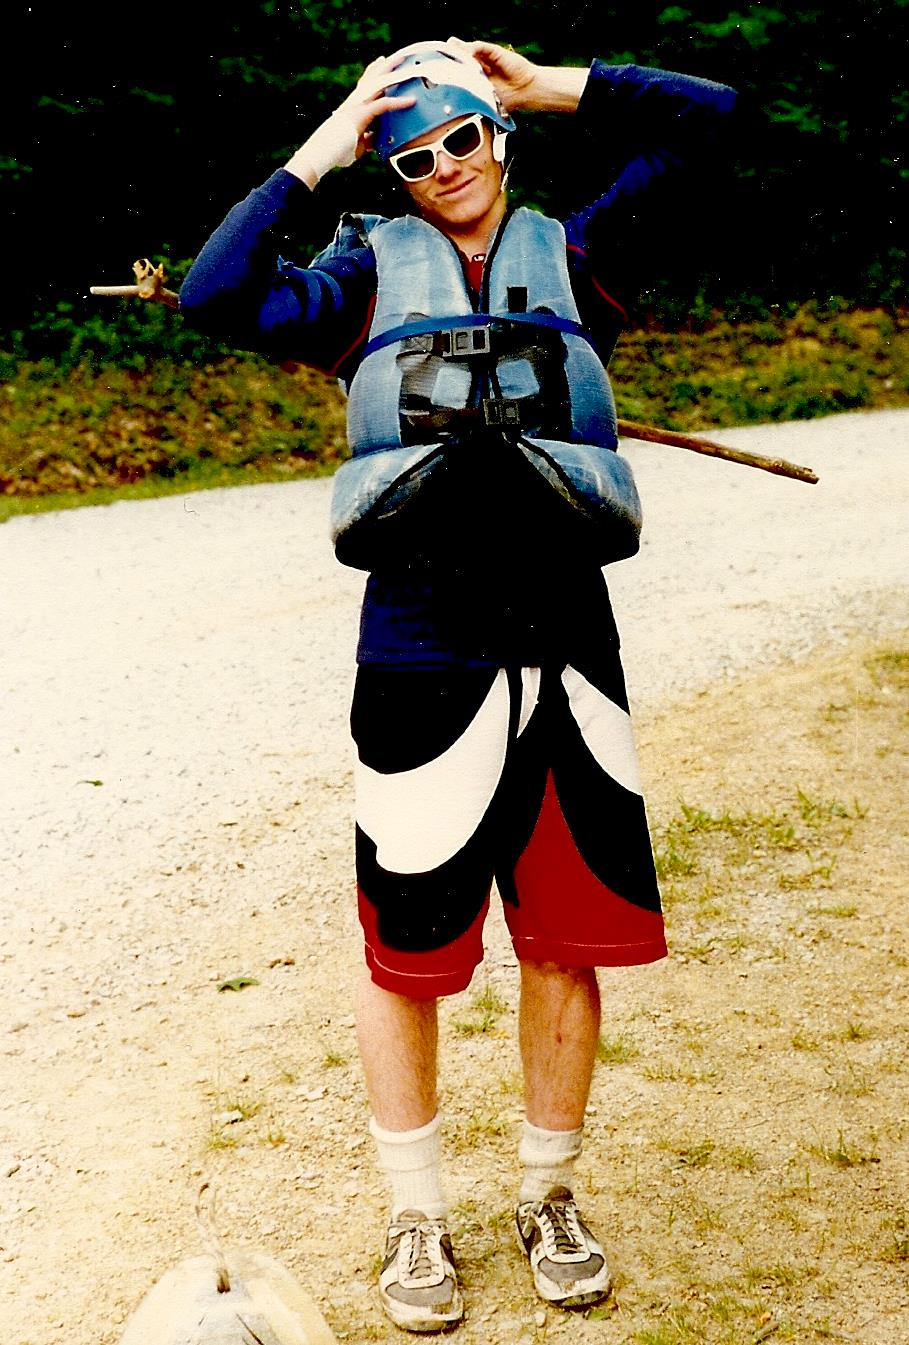 Kayakers - Keep Your Elbows in or Dislocate Your Shoulder